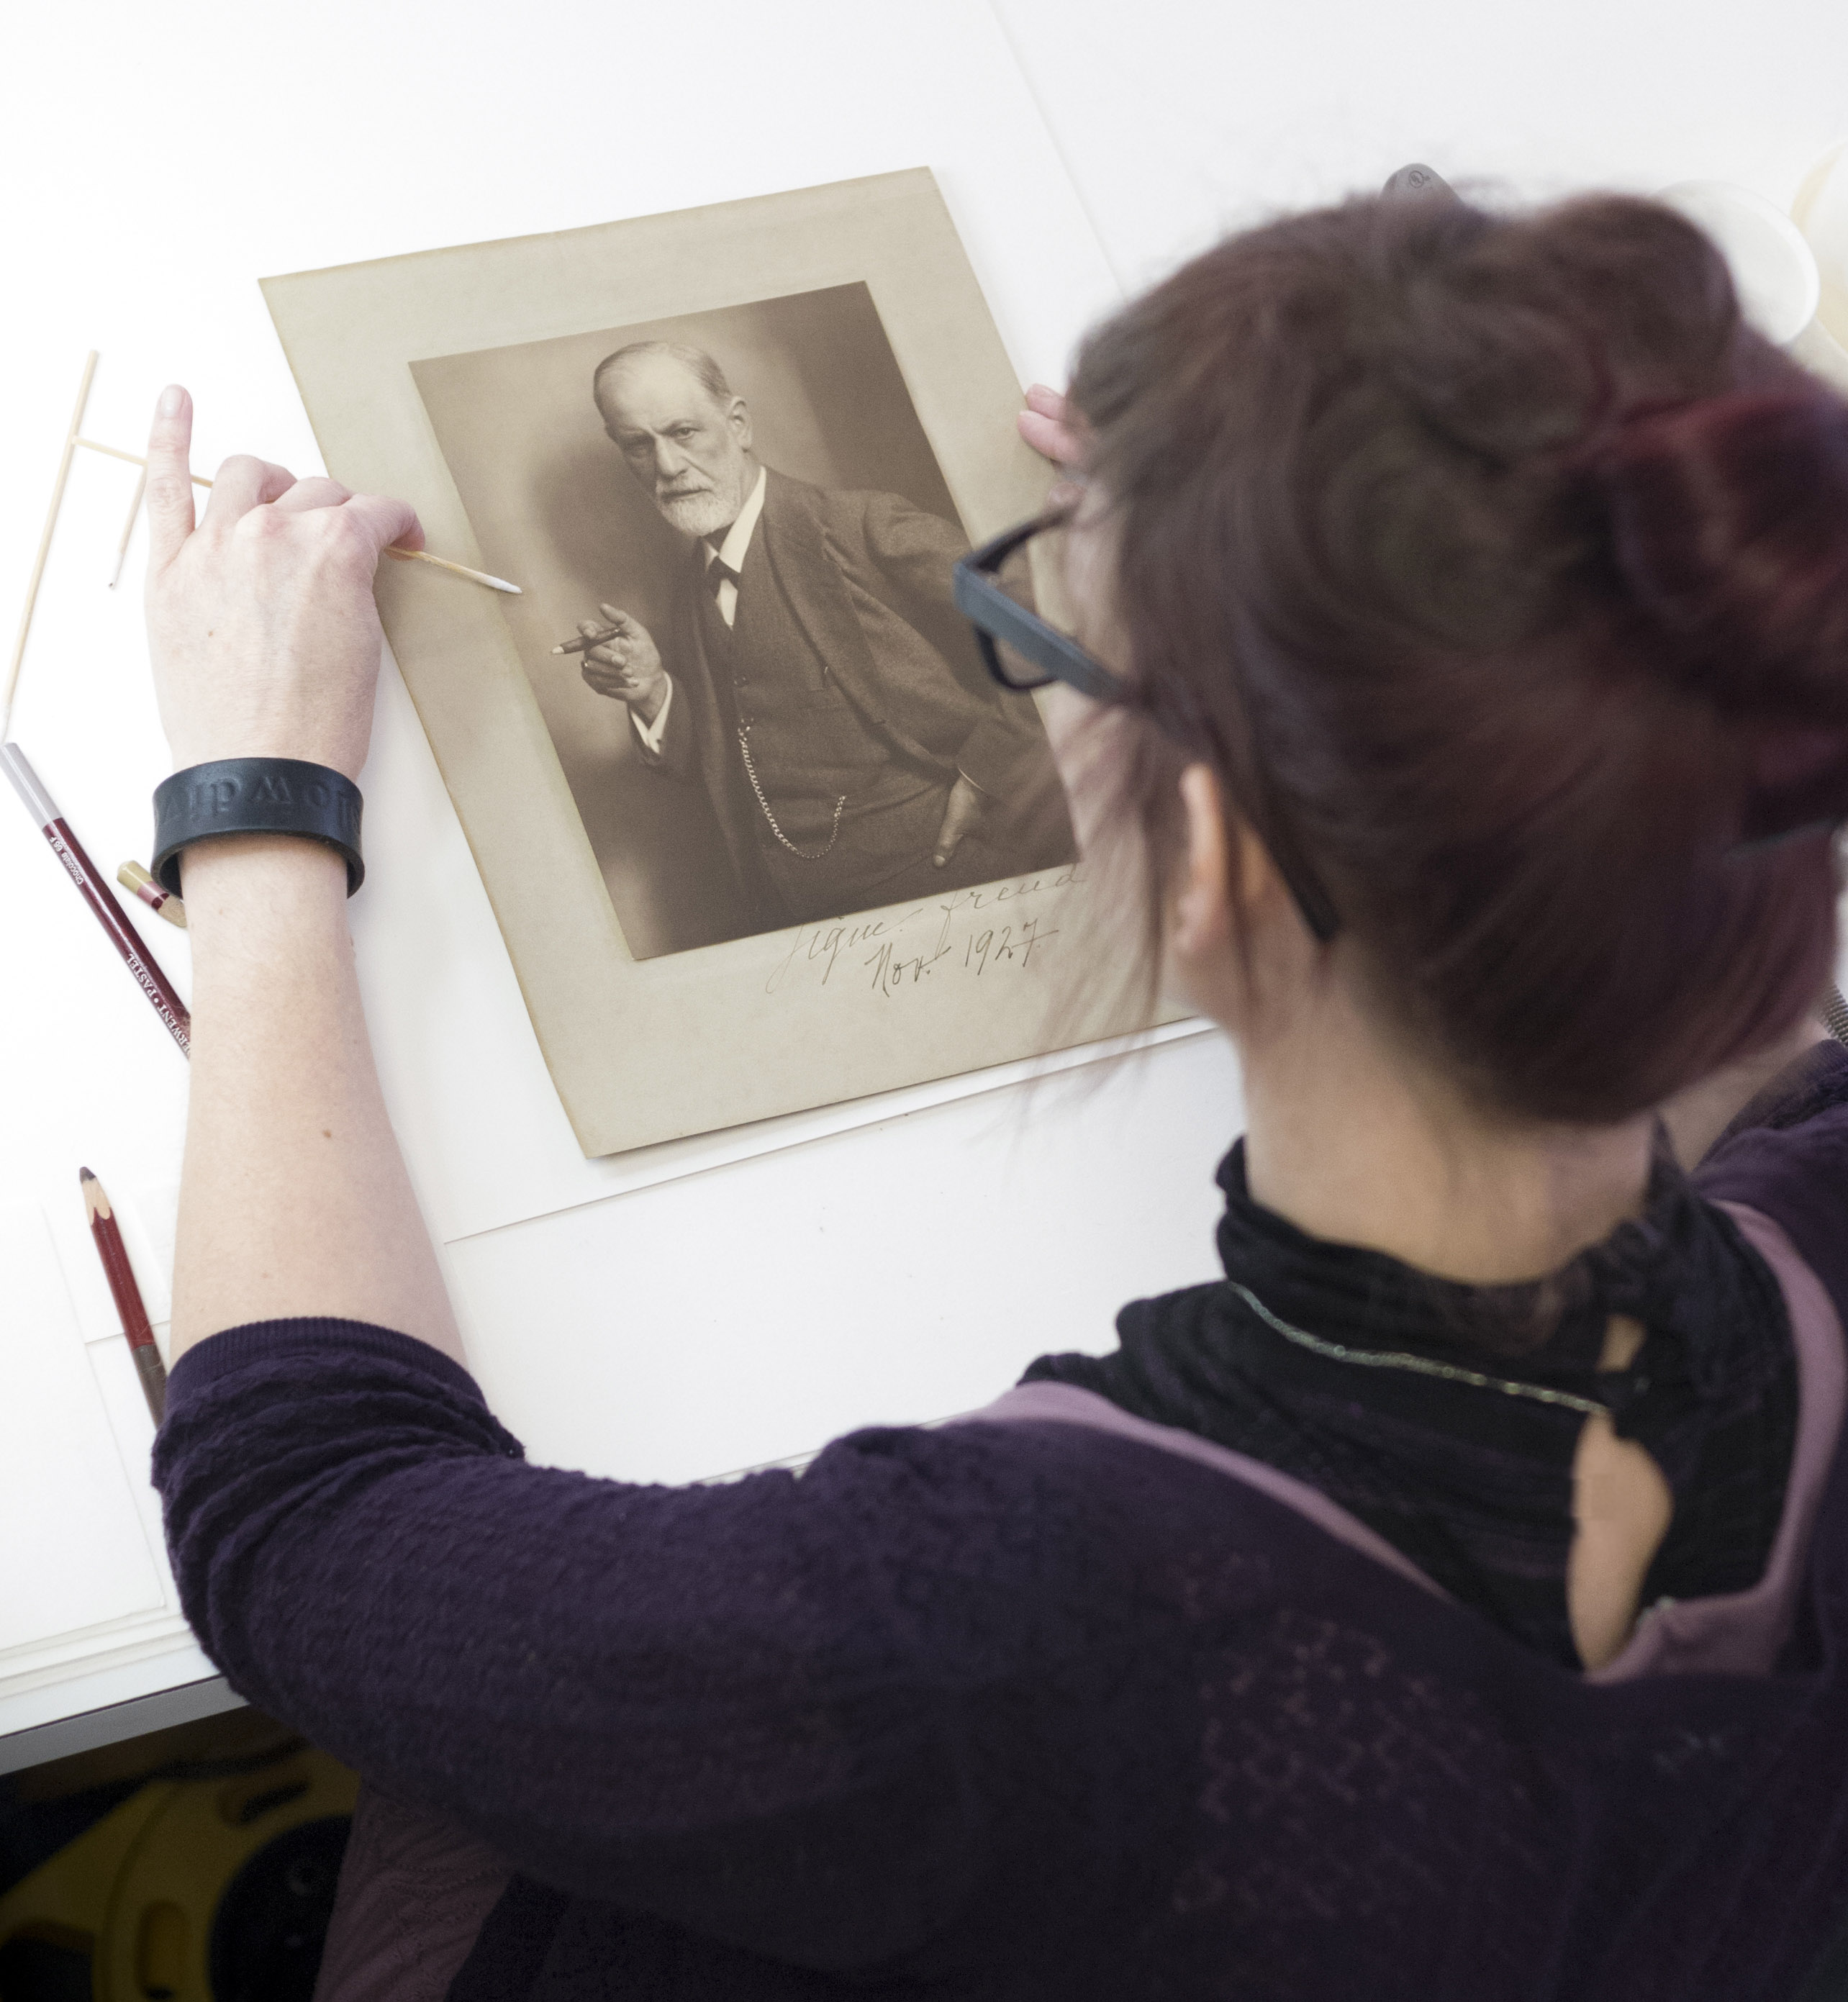 Conservator removes stain from photograph of Freud